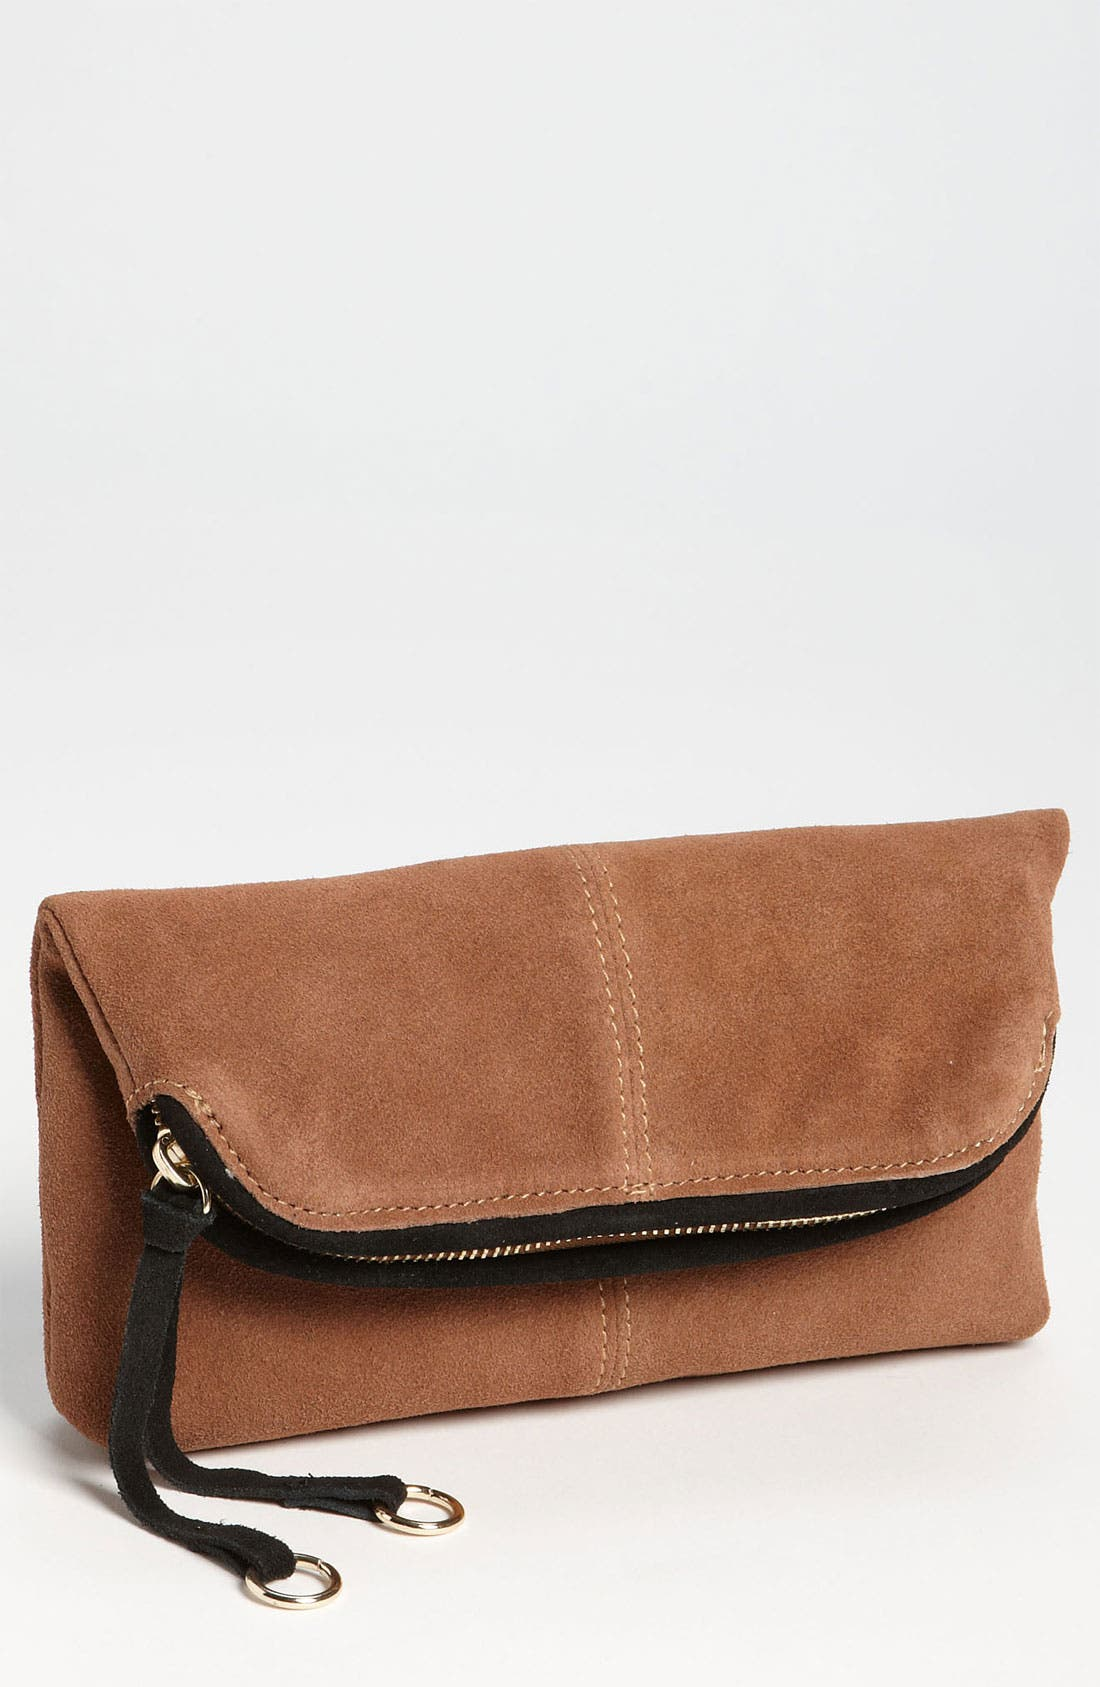 Alternate Image 1 Selected - Danielle Nicole 'Kate' Foldover Clutch